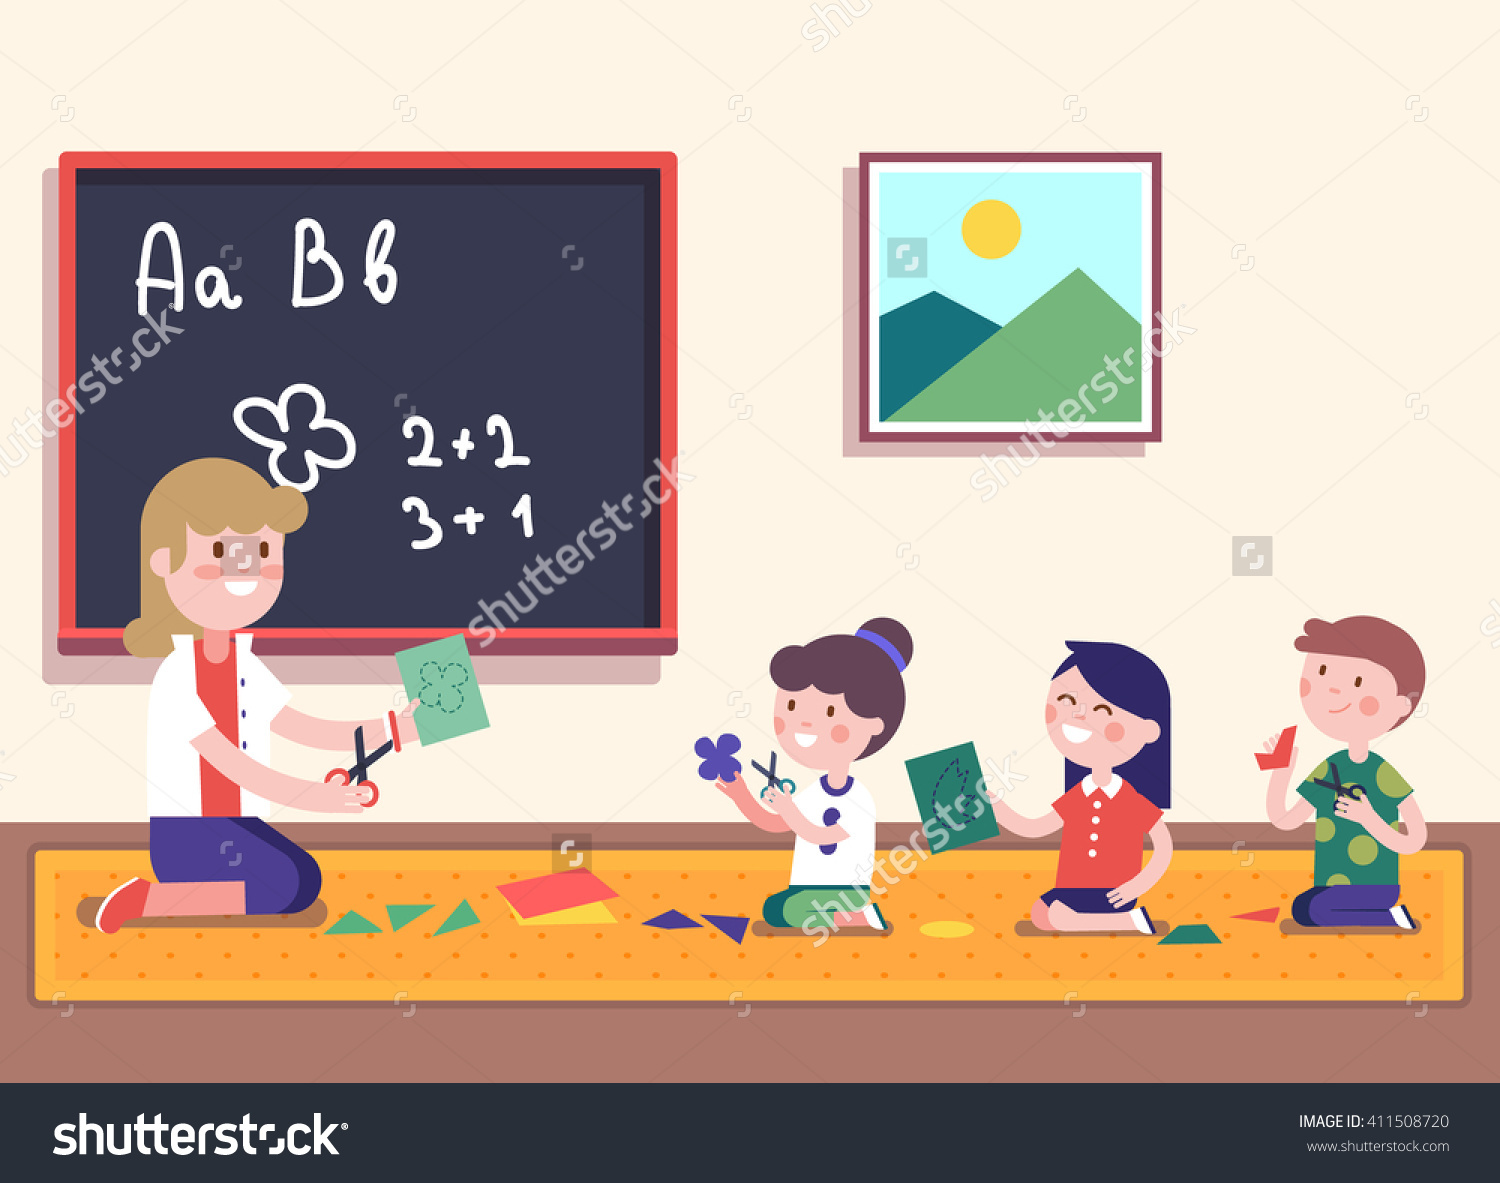 children learning math clipart - Clipground